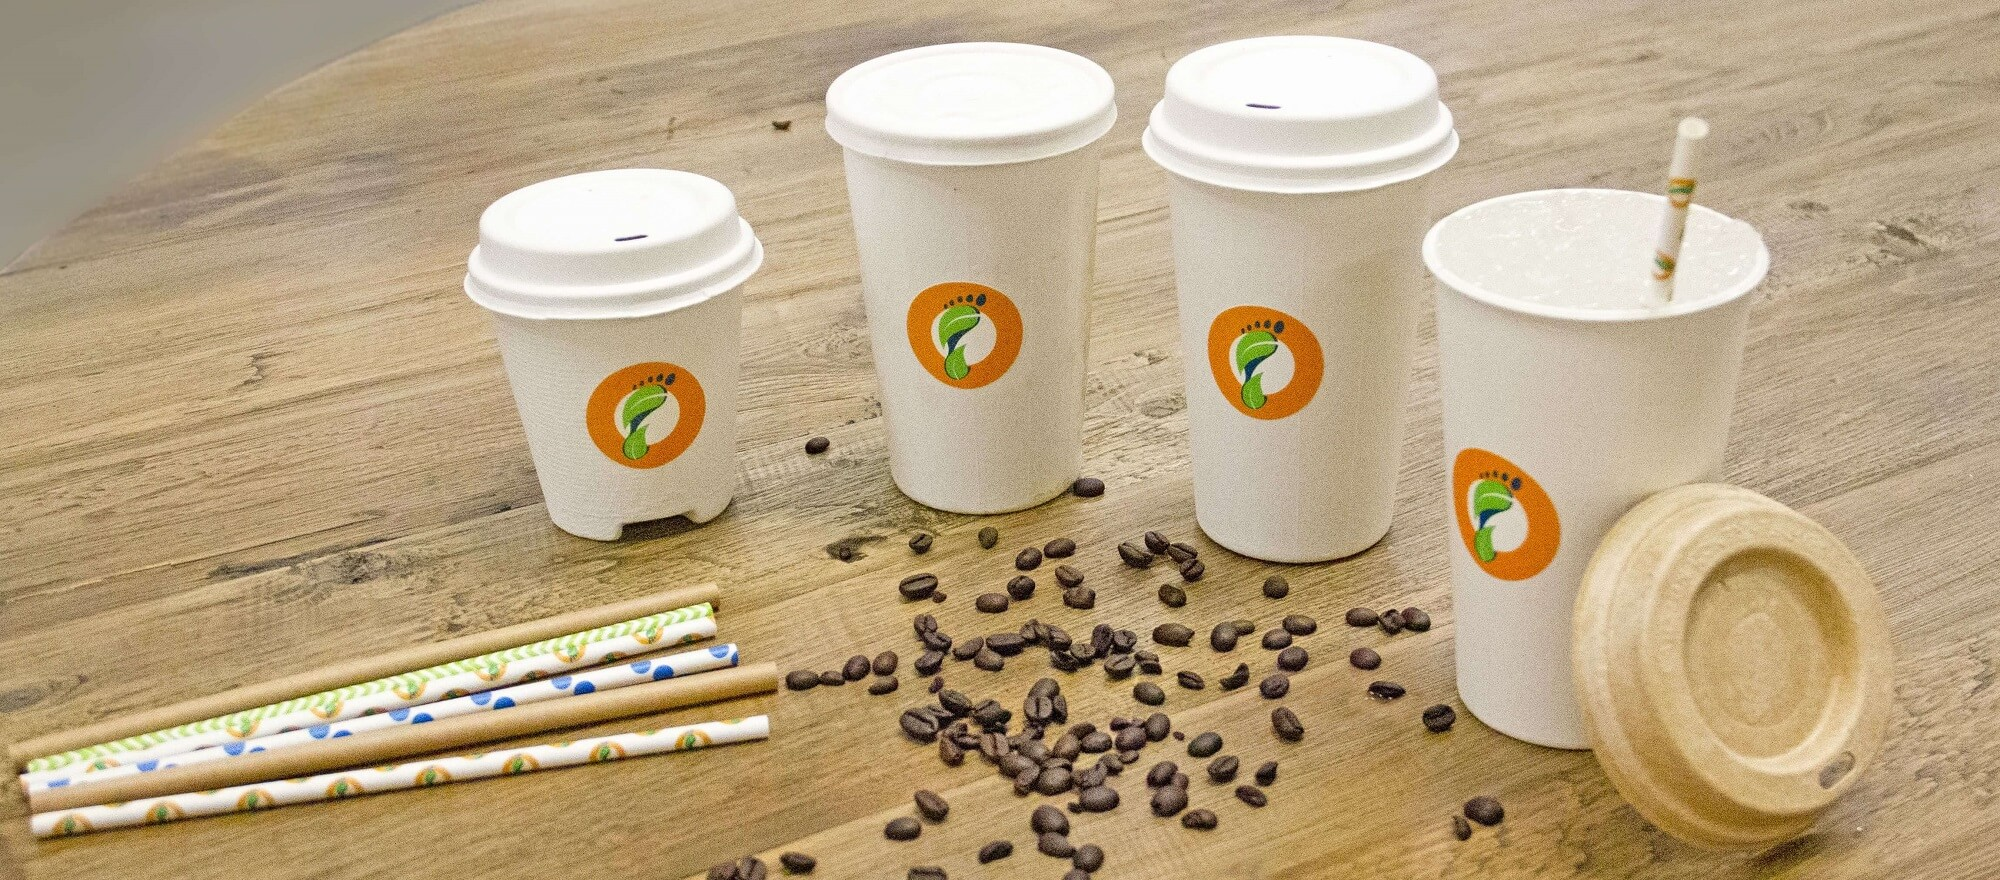 Footprints compostable straws, lids and cups